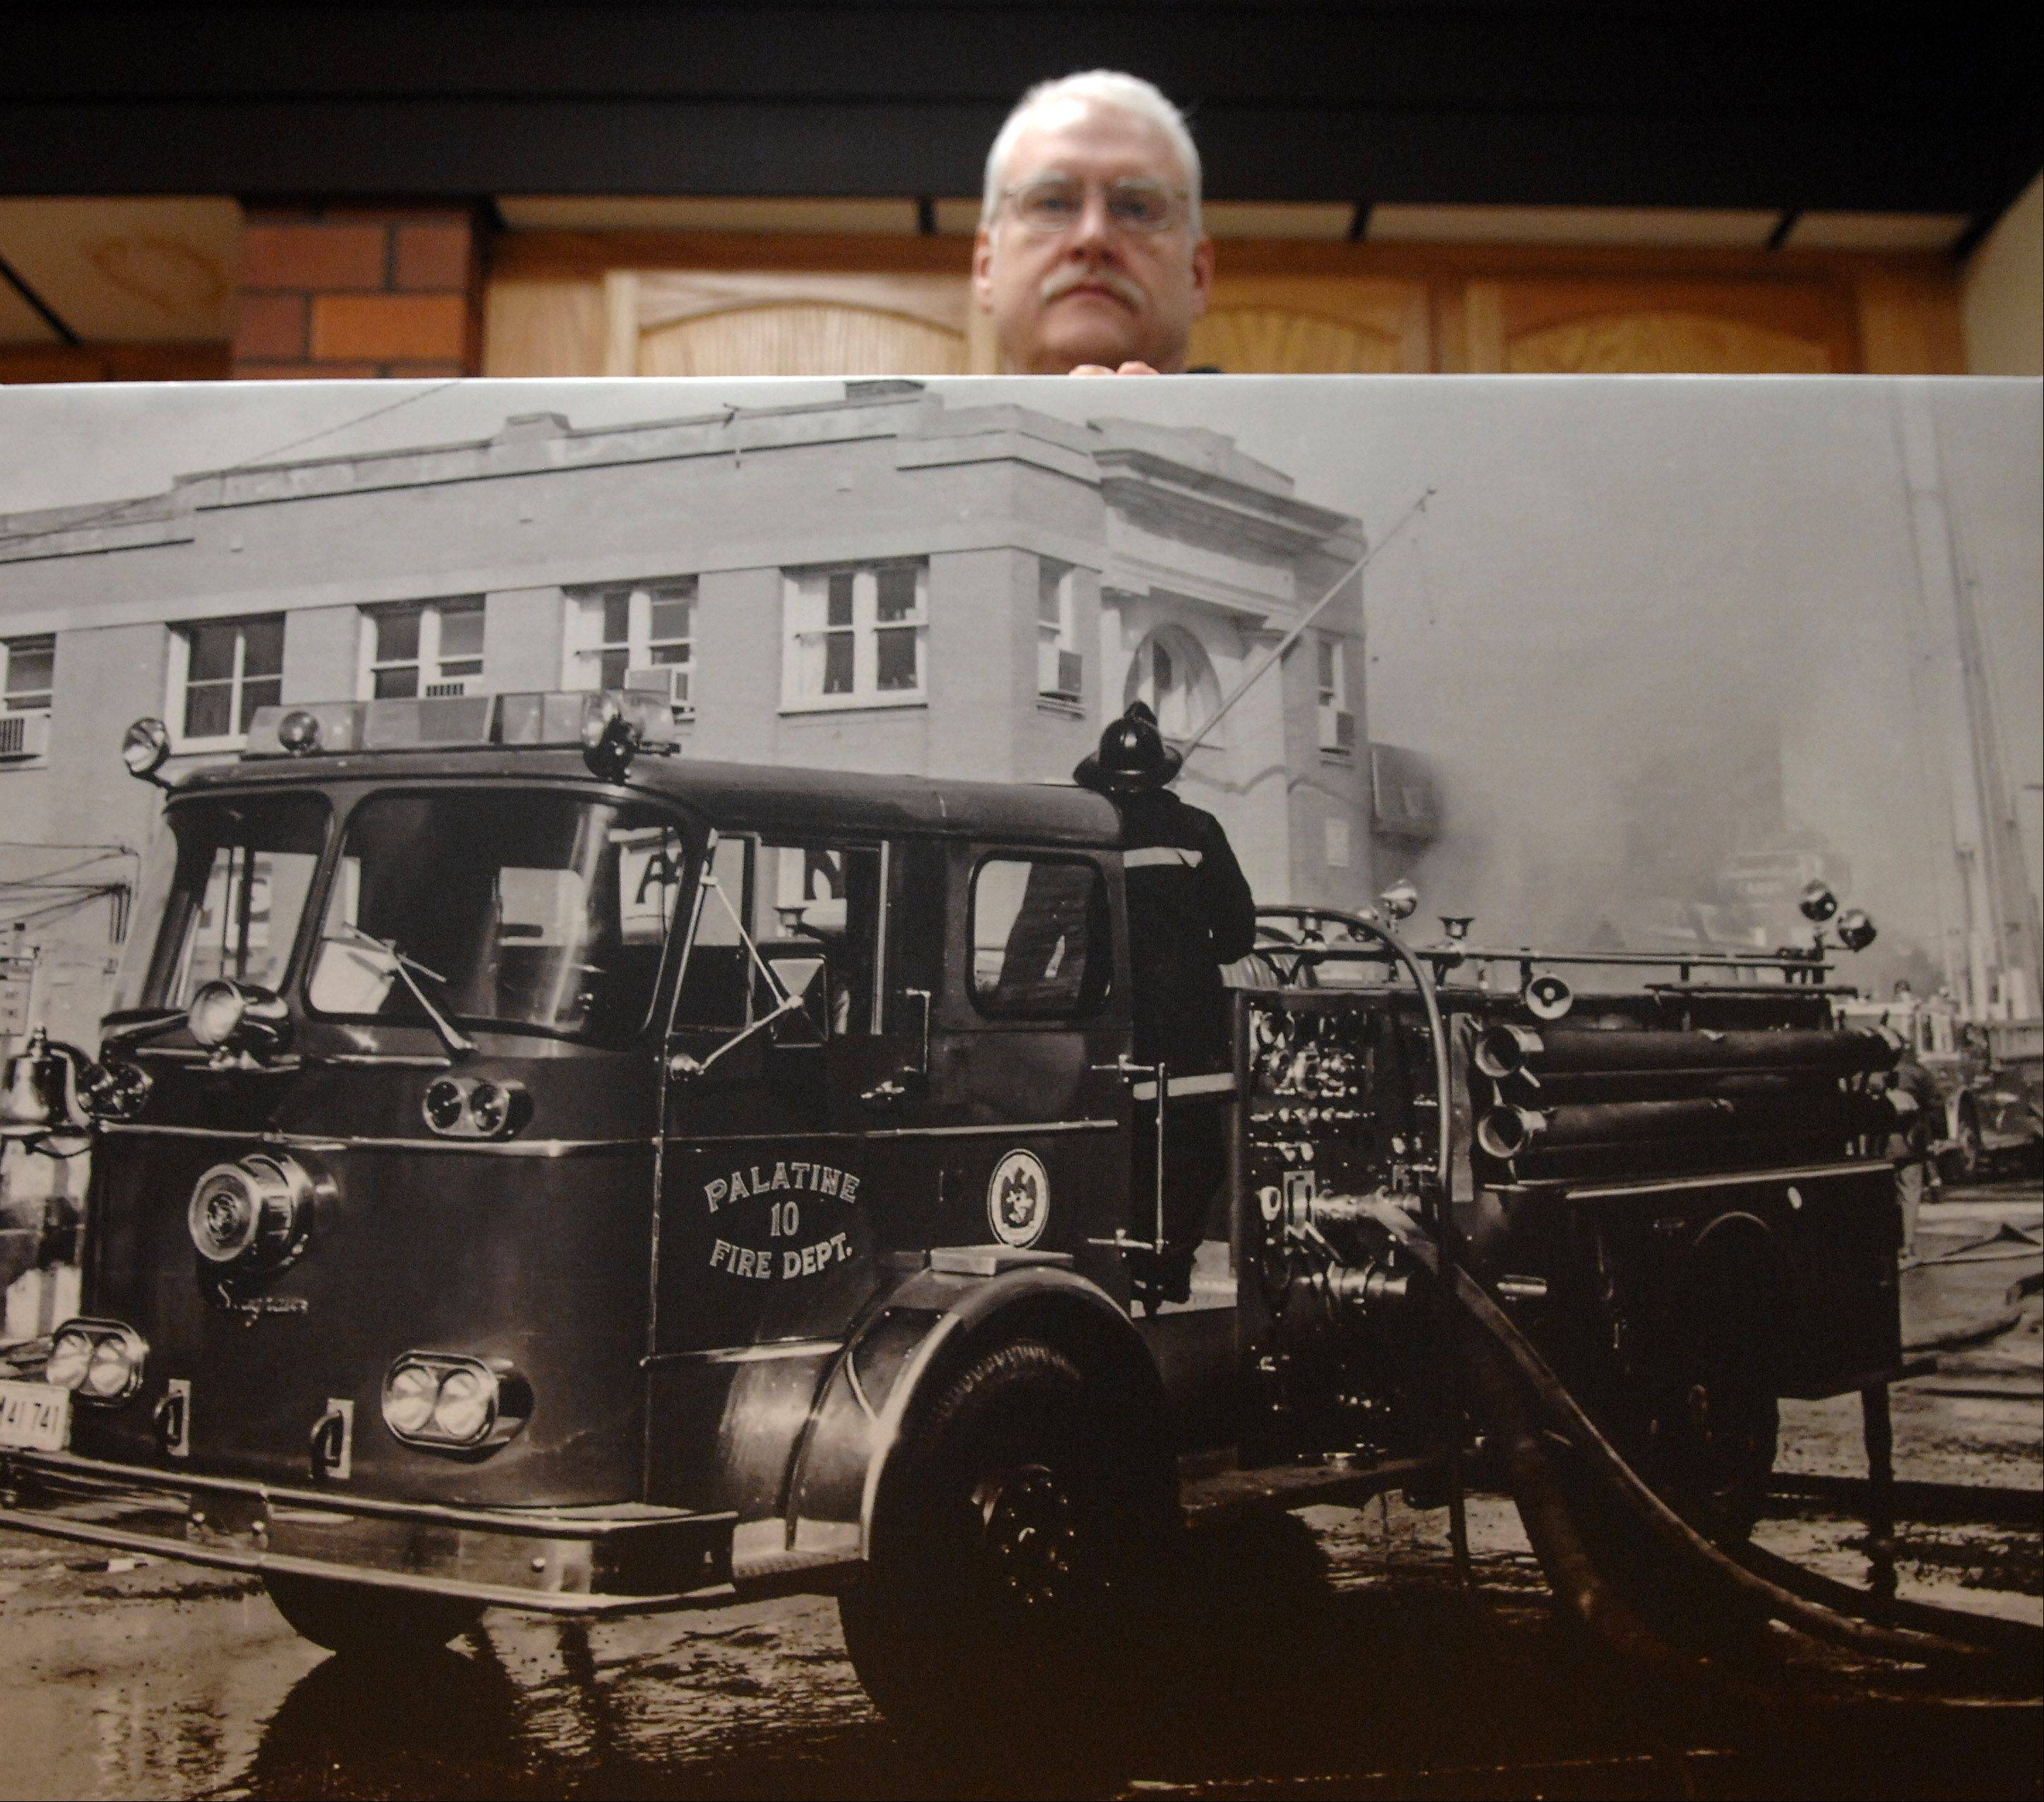 Rick West/rwest@dailyherald.comElgin firefighter John Tobin has written a book about the Ben Franklin Variety Store fire that killed three Palatine volunteer firefighters 40 years ago.